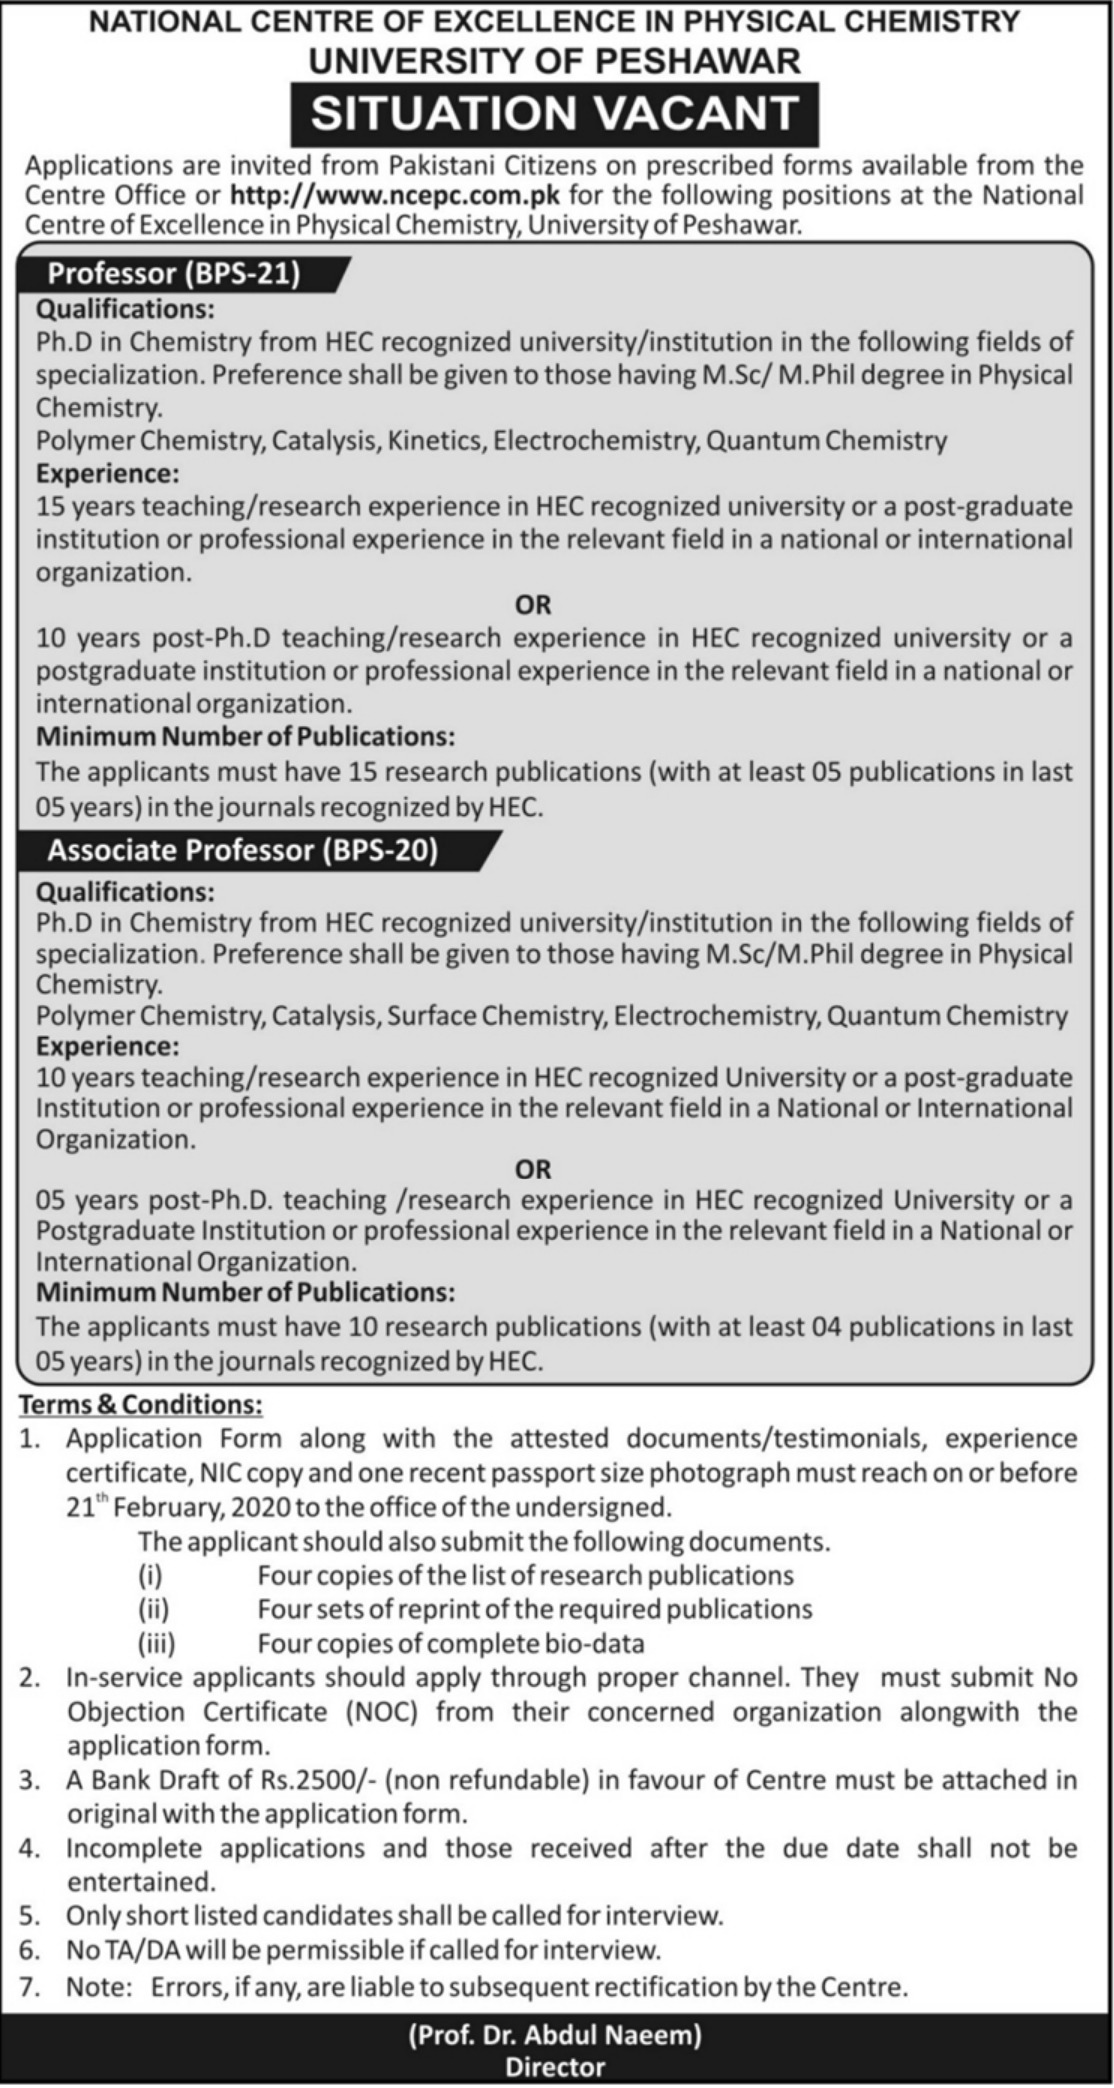 University of Peshawar Jobs 2020